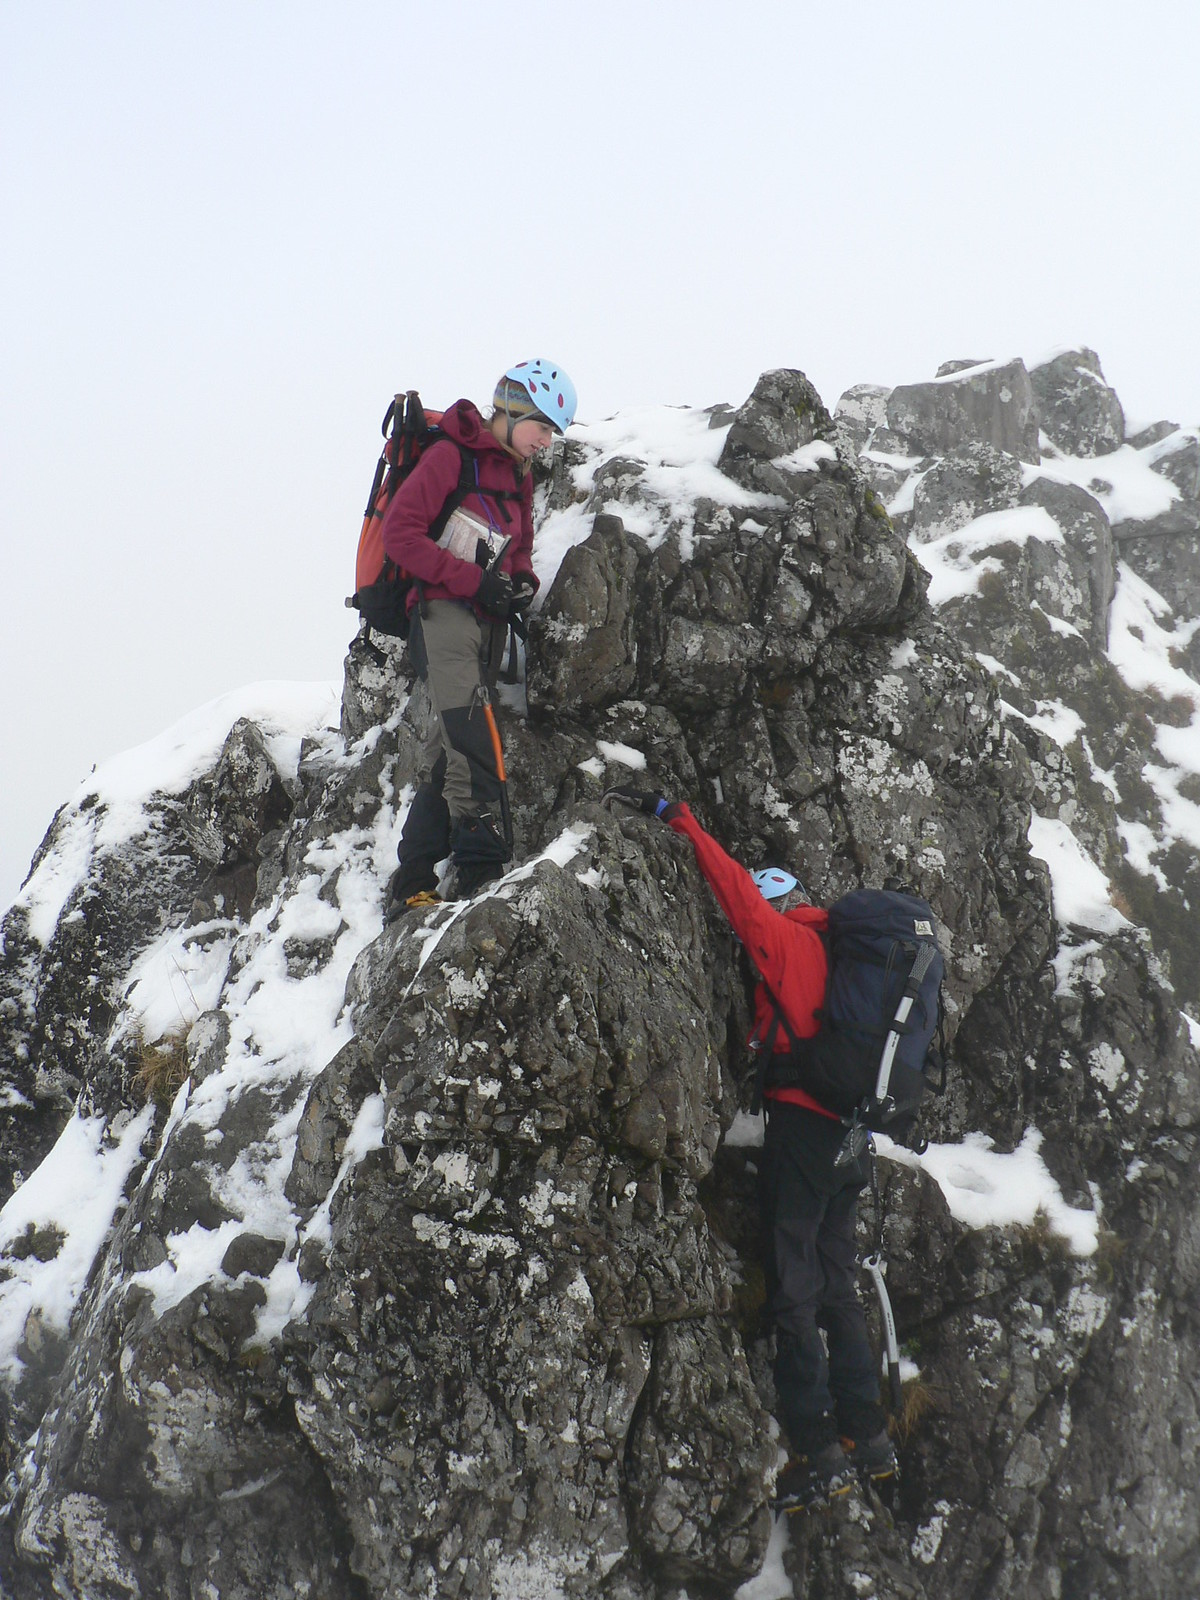 The hardest parts of the ridge were probably the down climbs (as demonstrated nicely by Lorna here!).